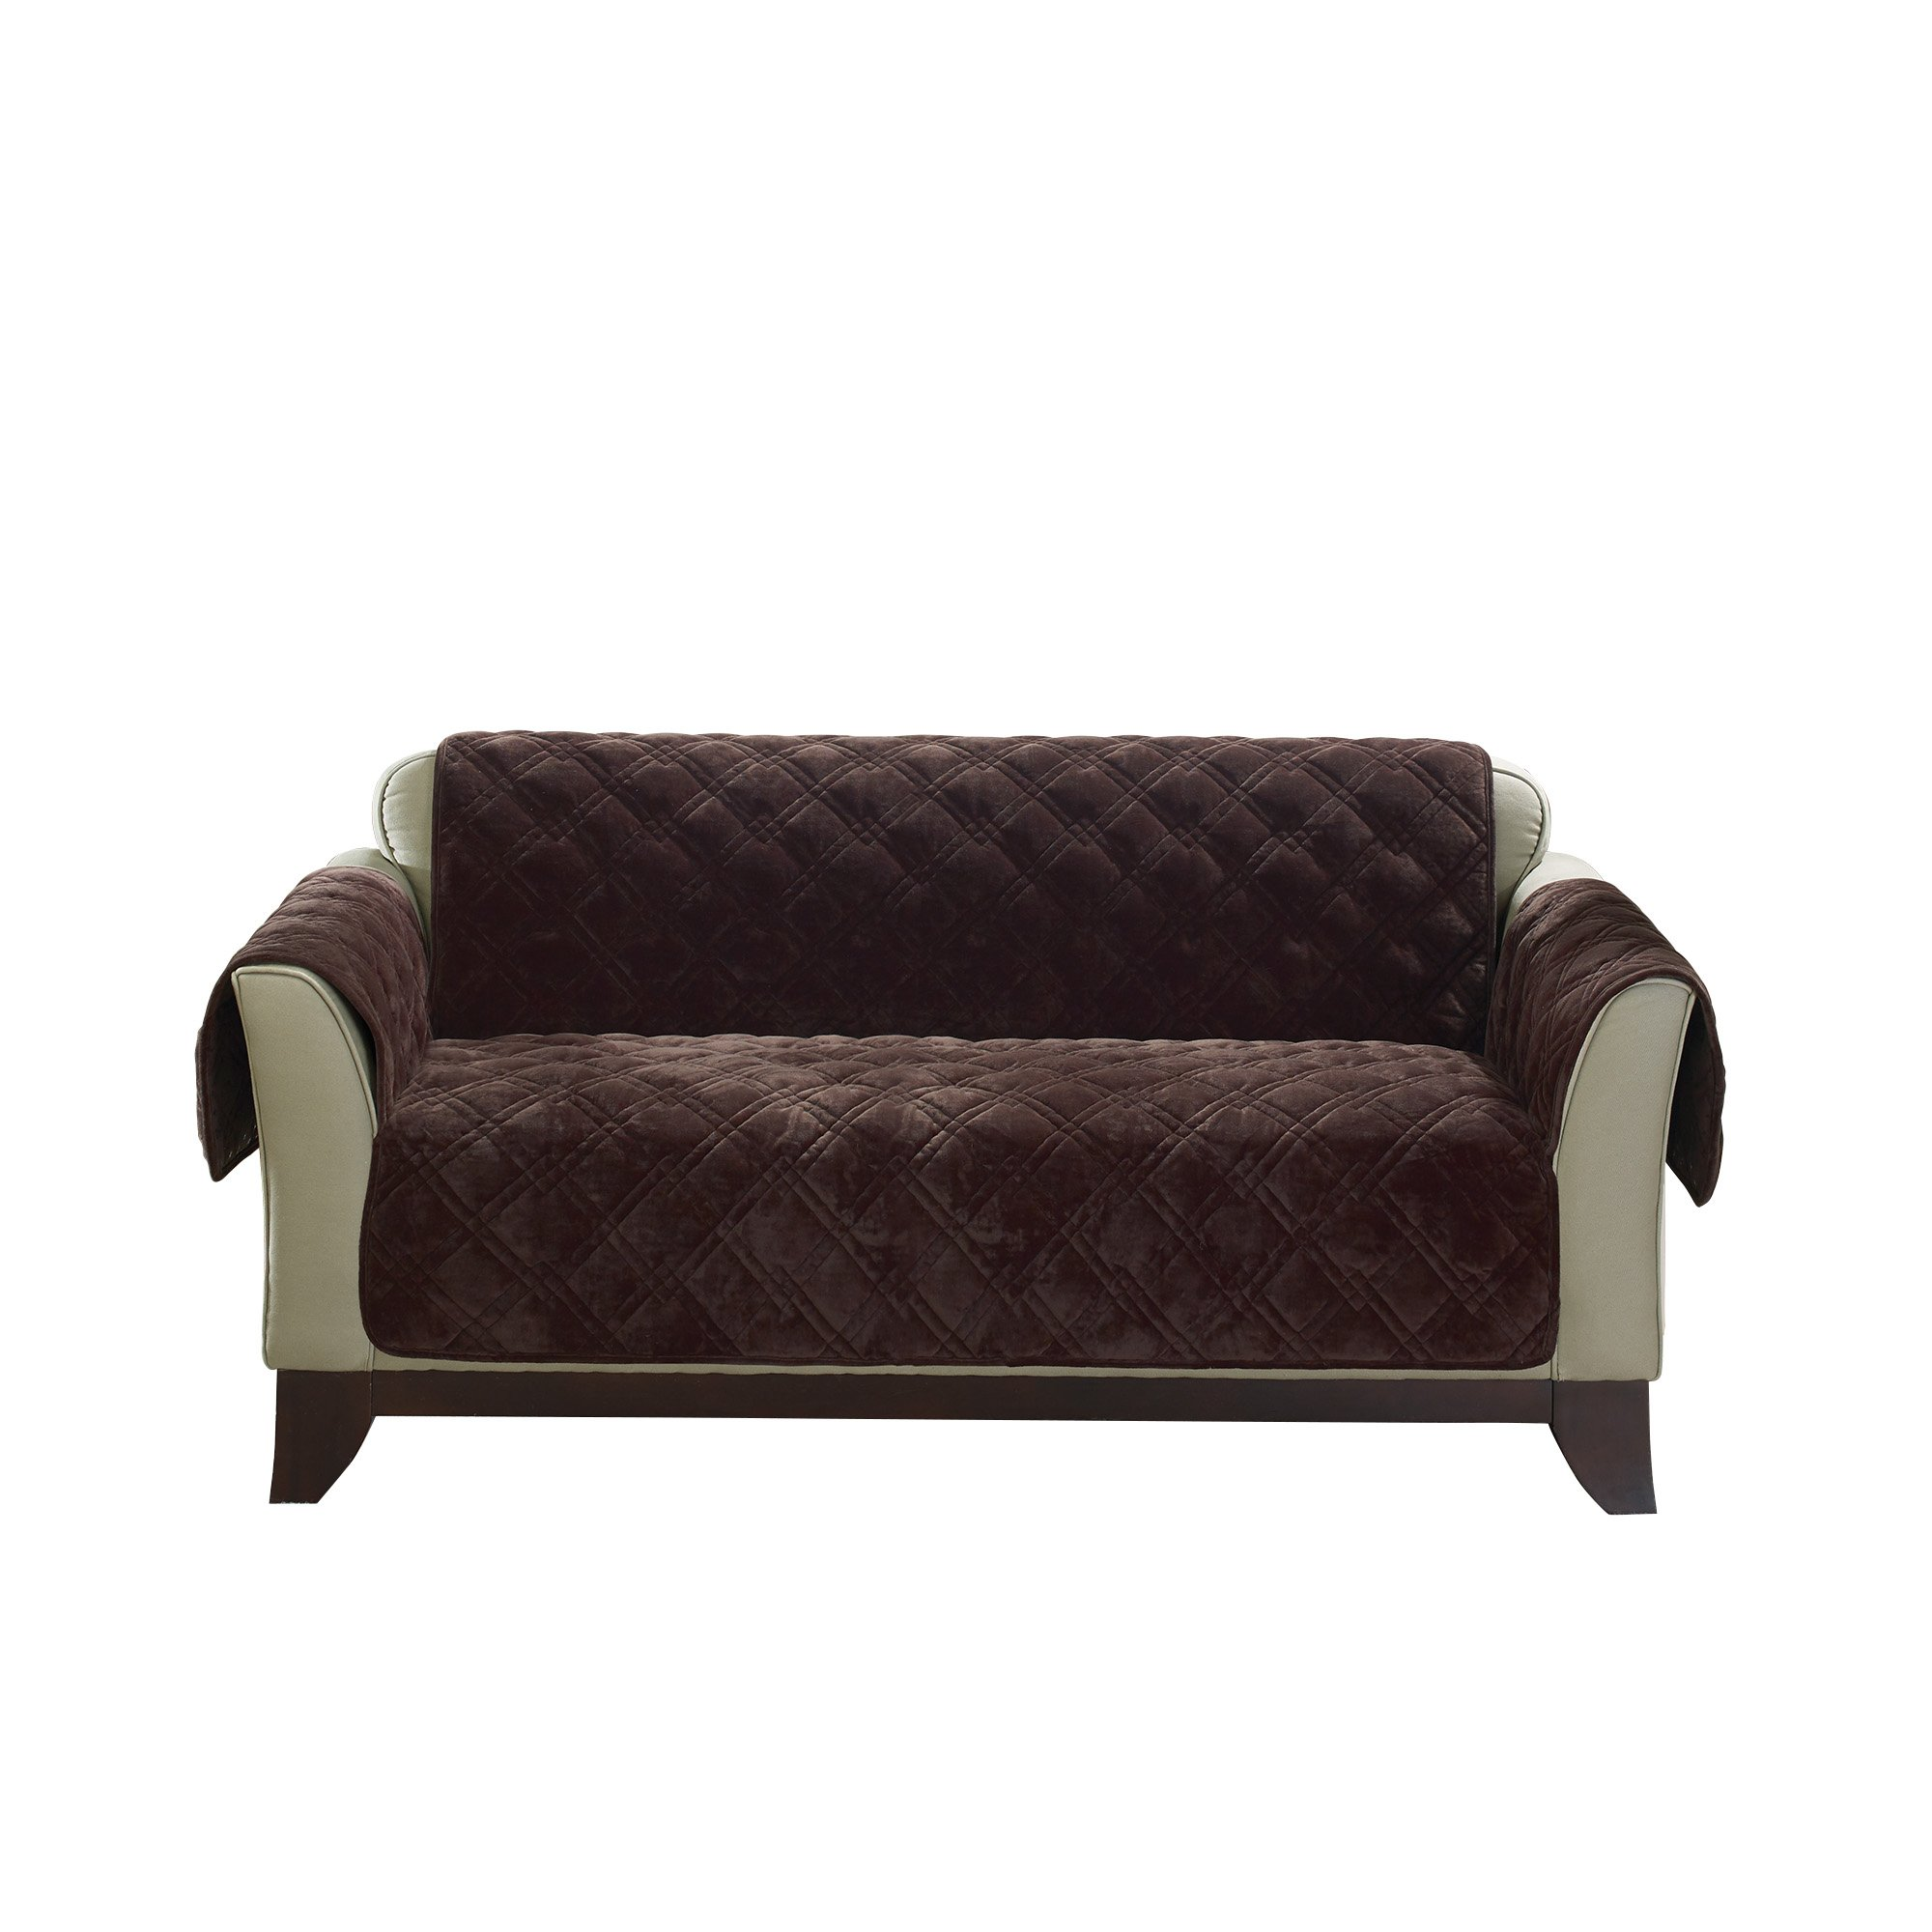 Sure Fit Plush Comfort Furniture Protector with Non Slip Backing, Loveseat, Chocolate by Surefit